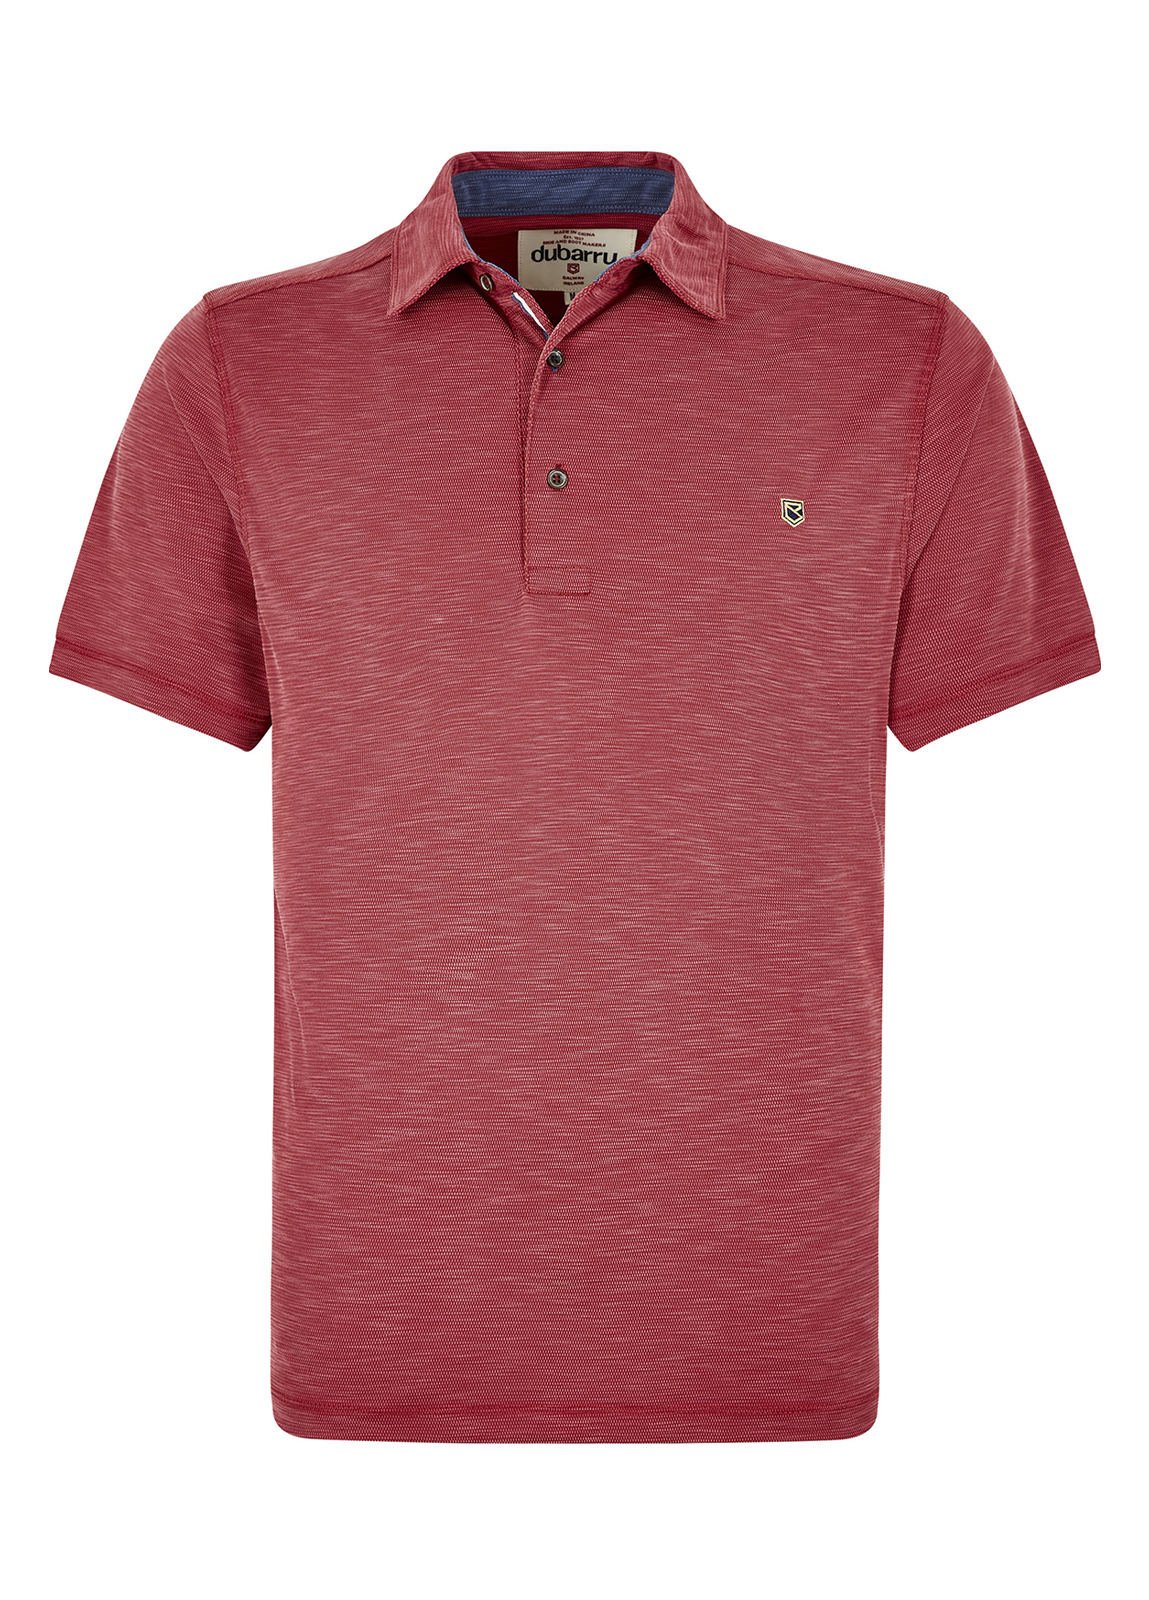 Dubarry_Elphin Polo Shirt - Ruby Red_Image_2